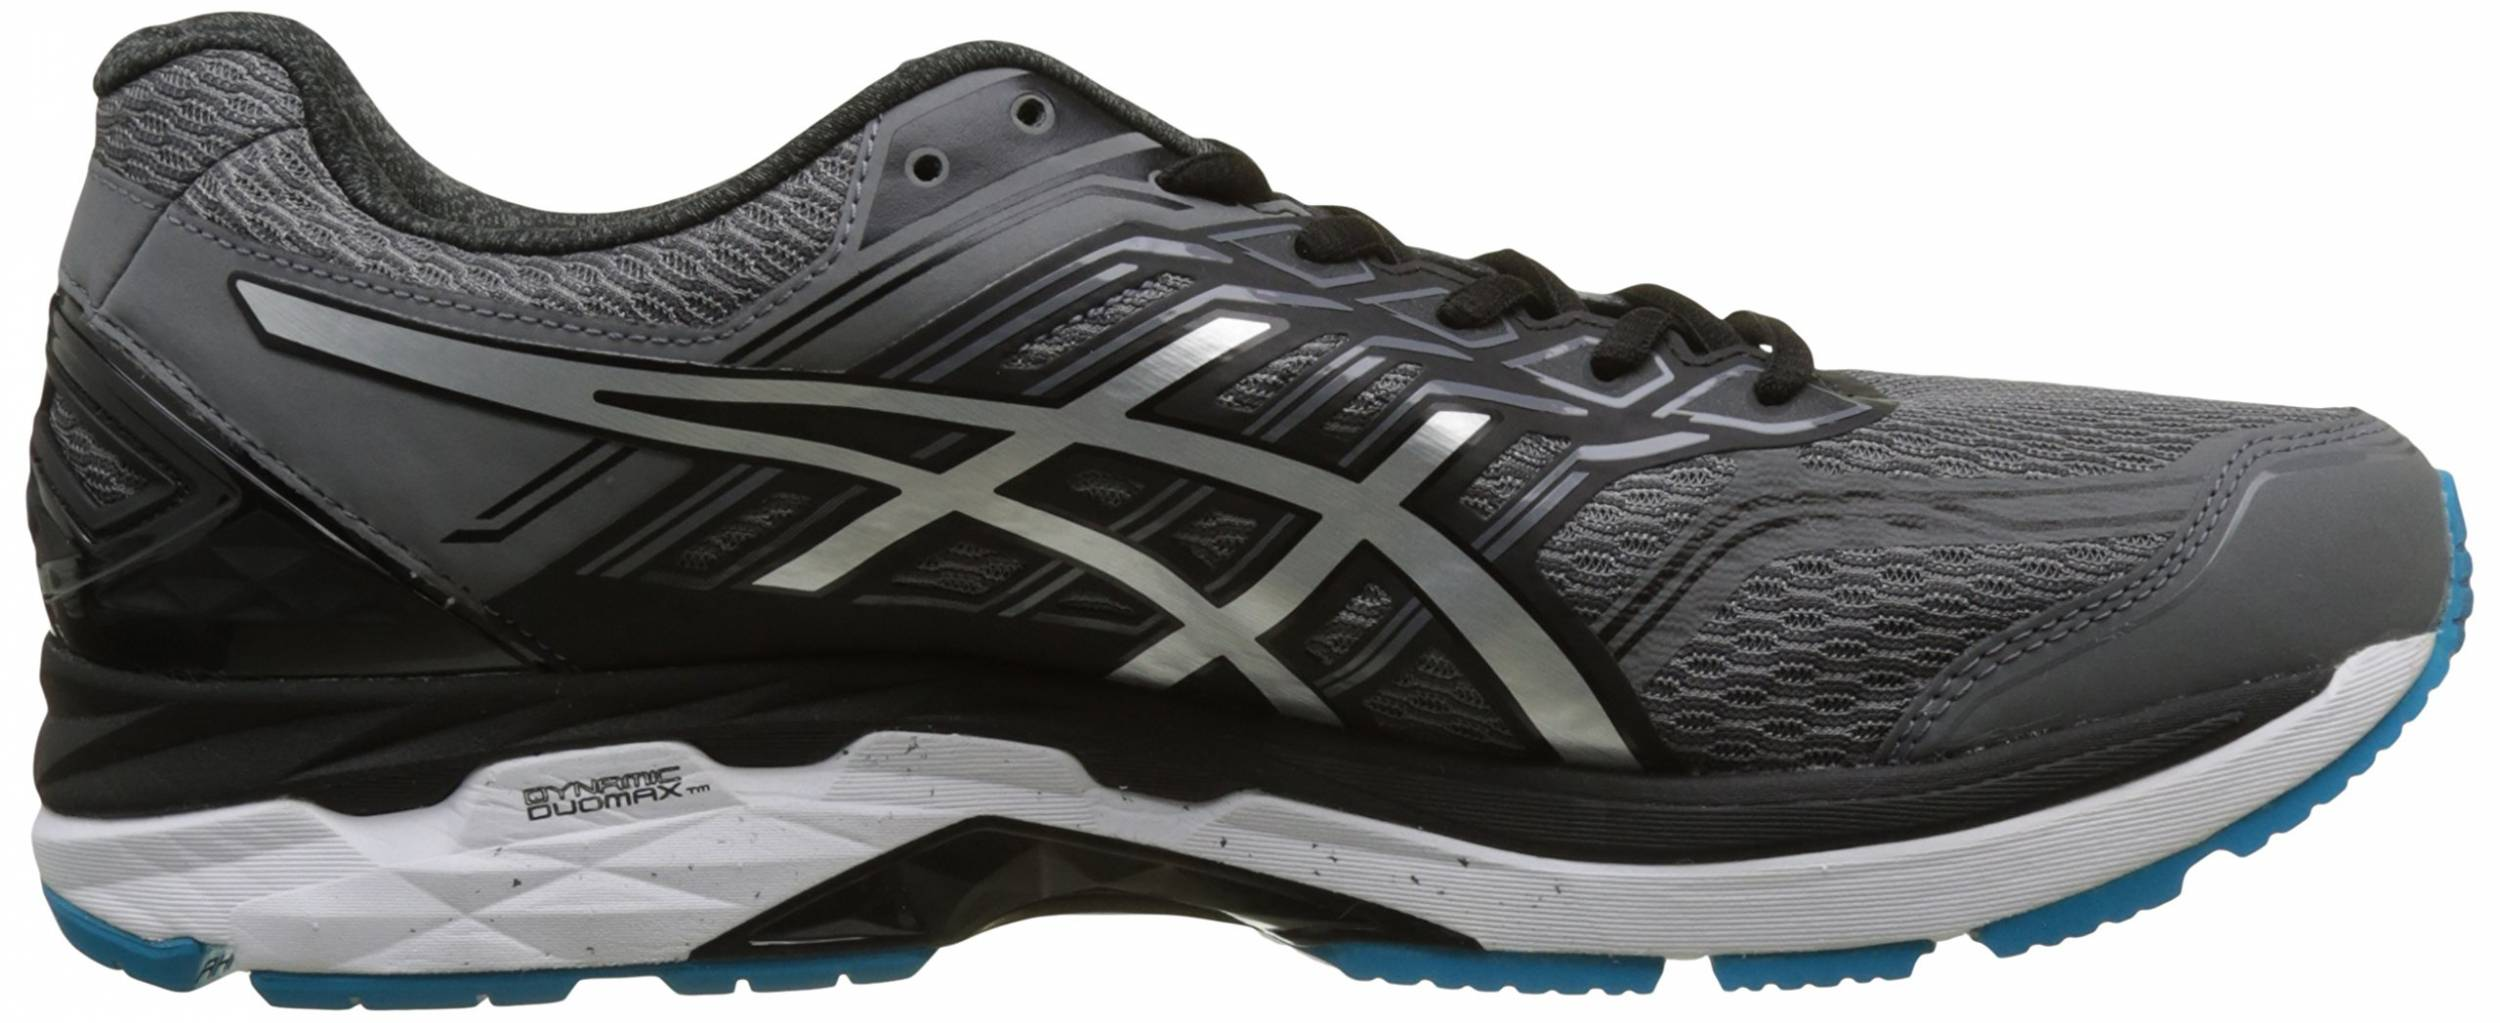 Only $40 + Review of Asics GT 2000 5